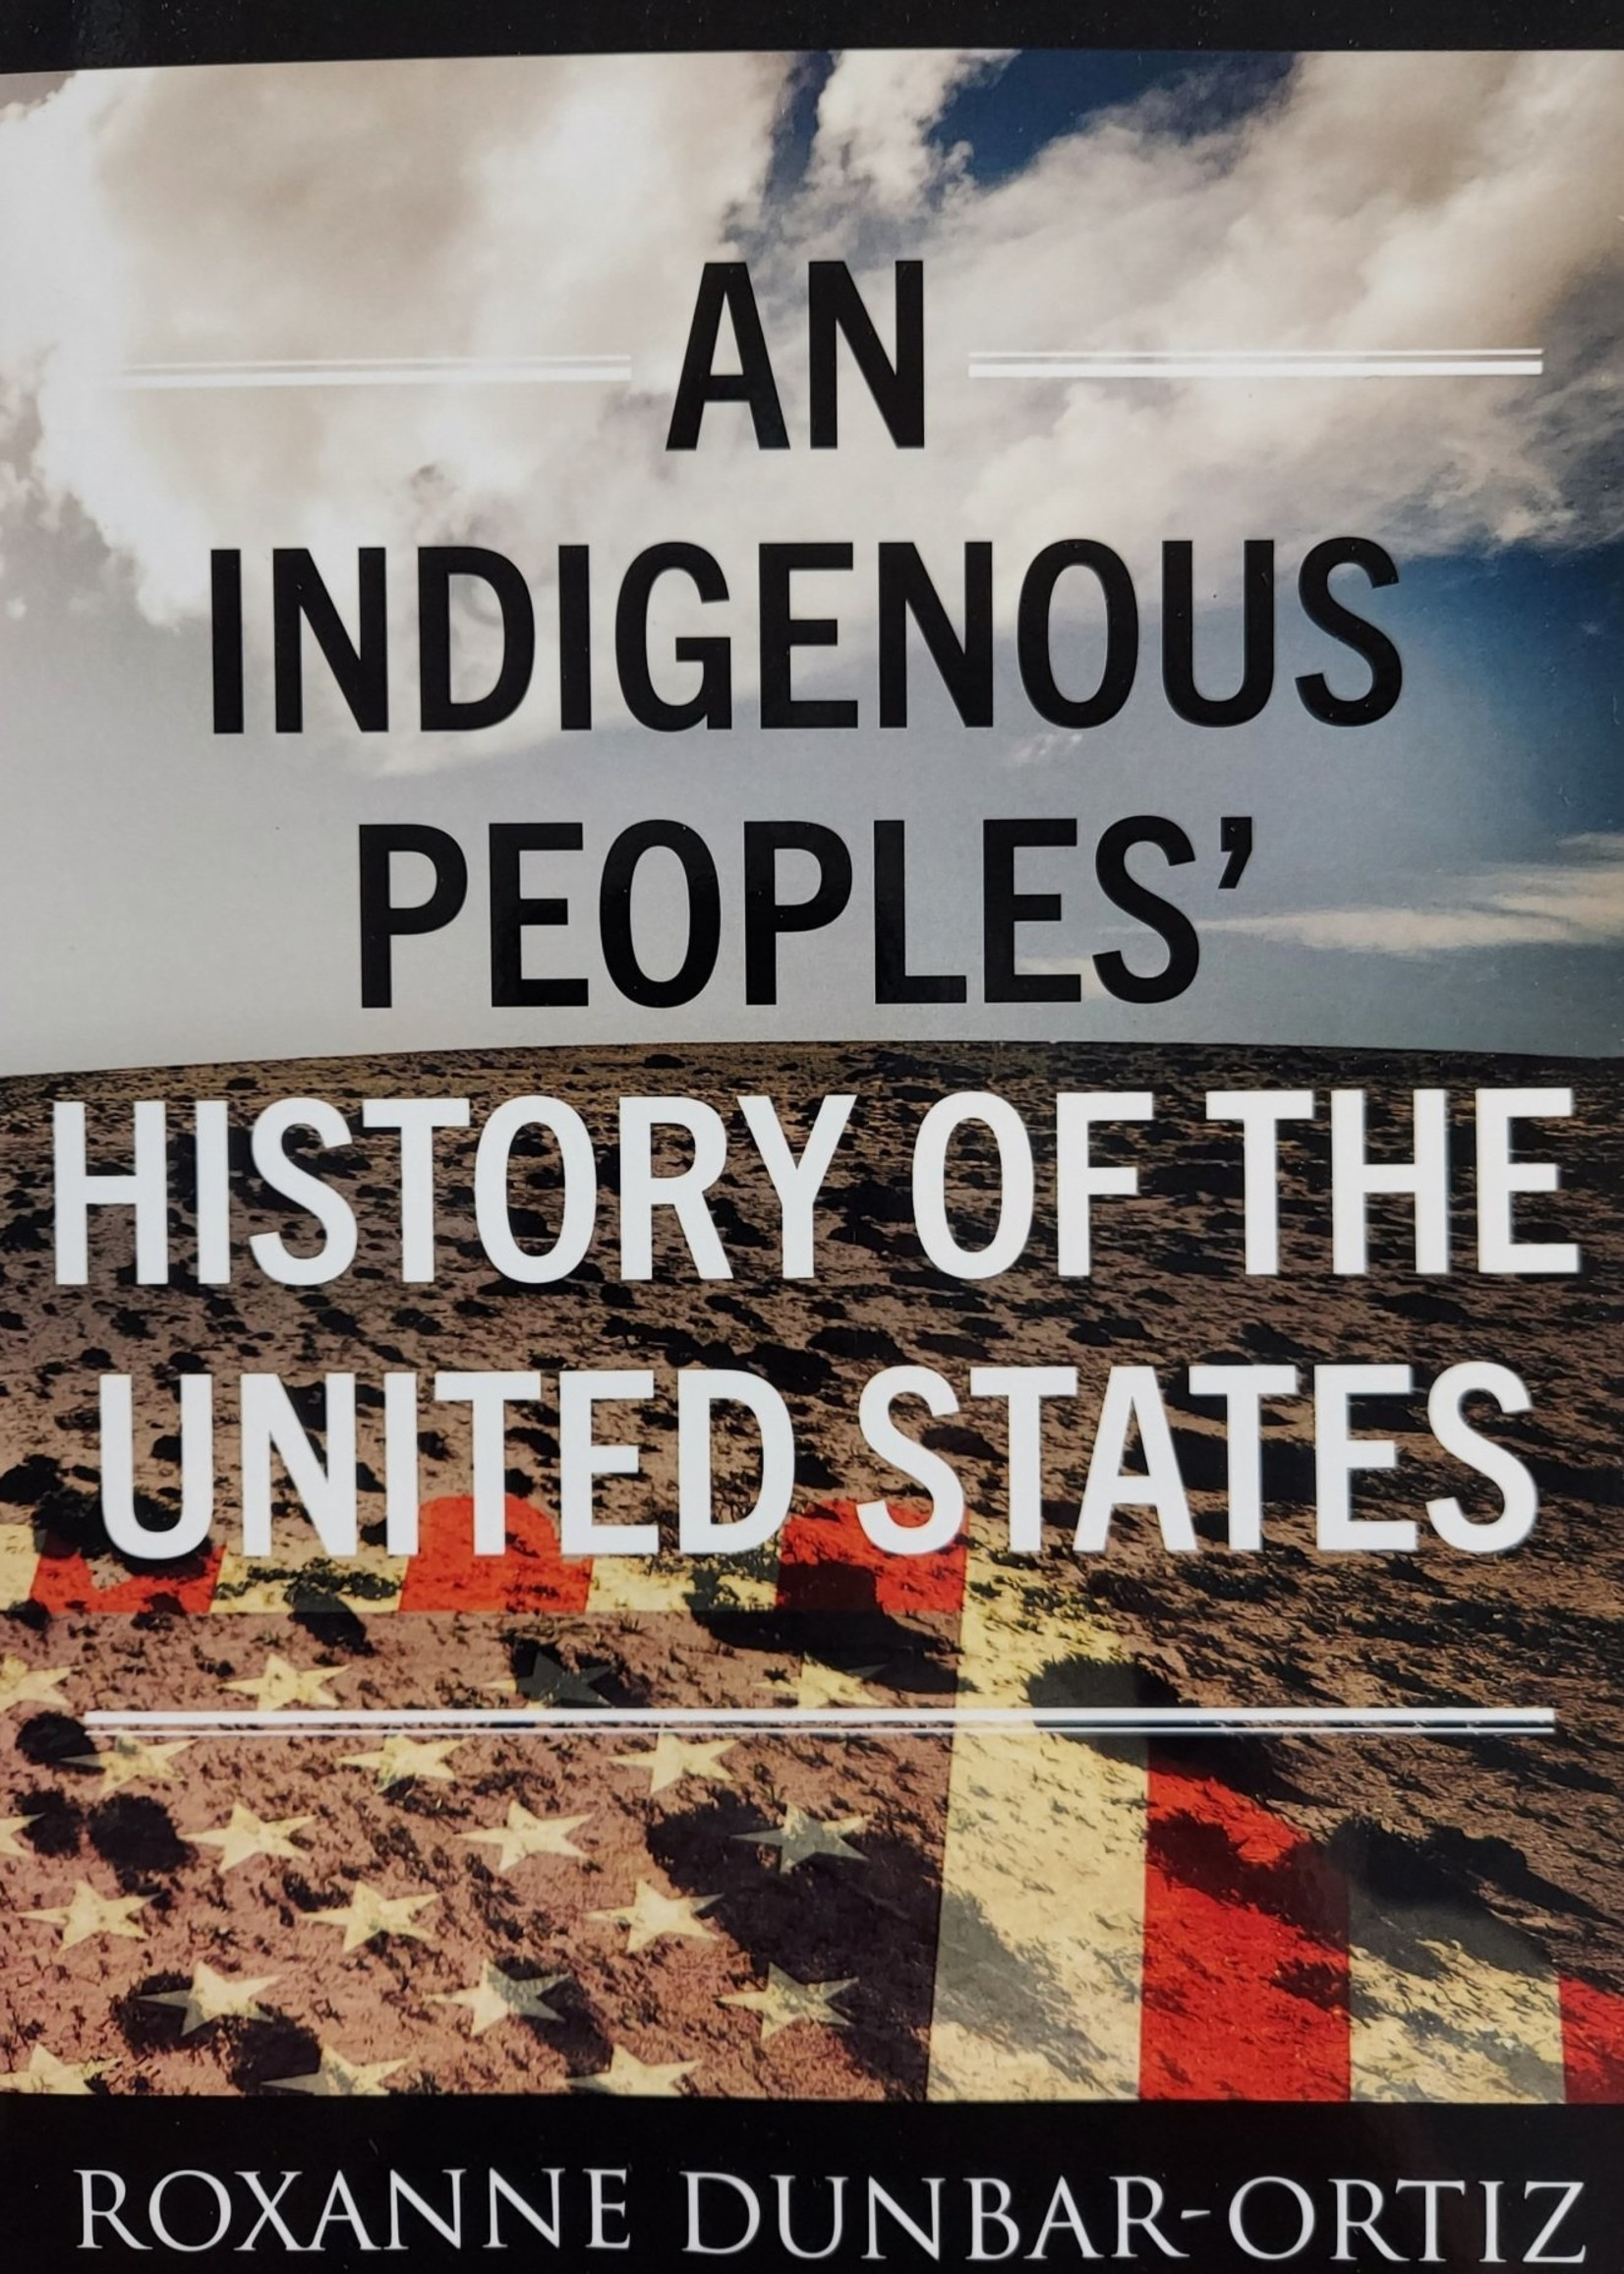 An Indigenous Peoples' History of the United States-By ROXANNE DUNBAR-ORTIZ